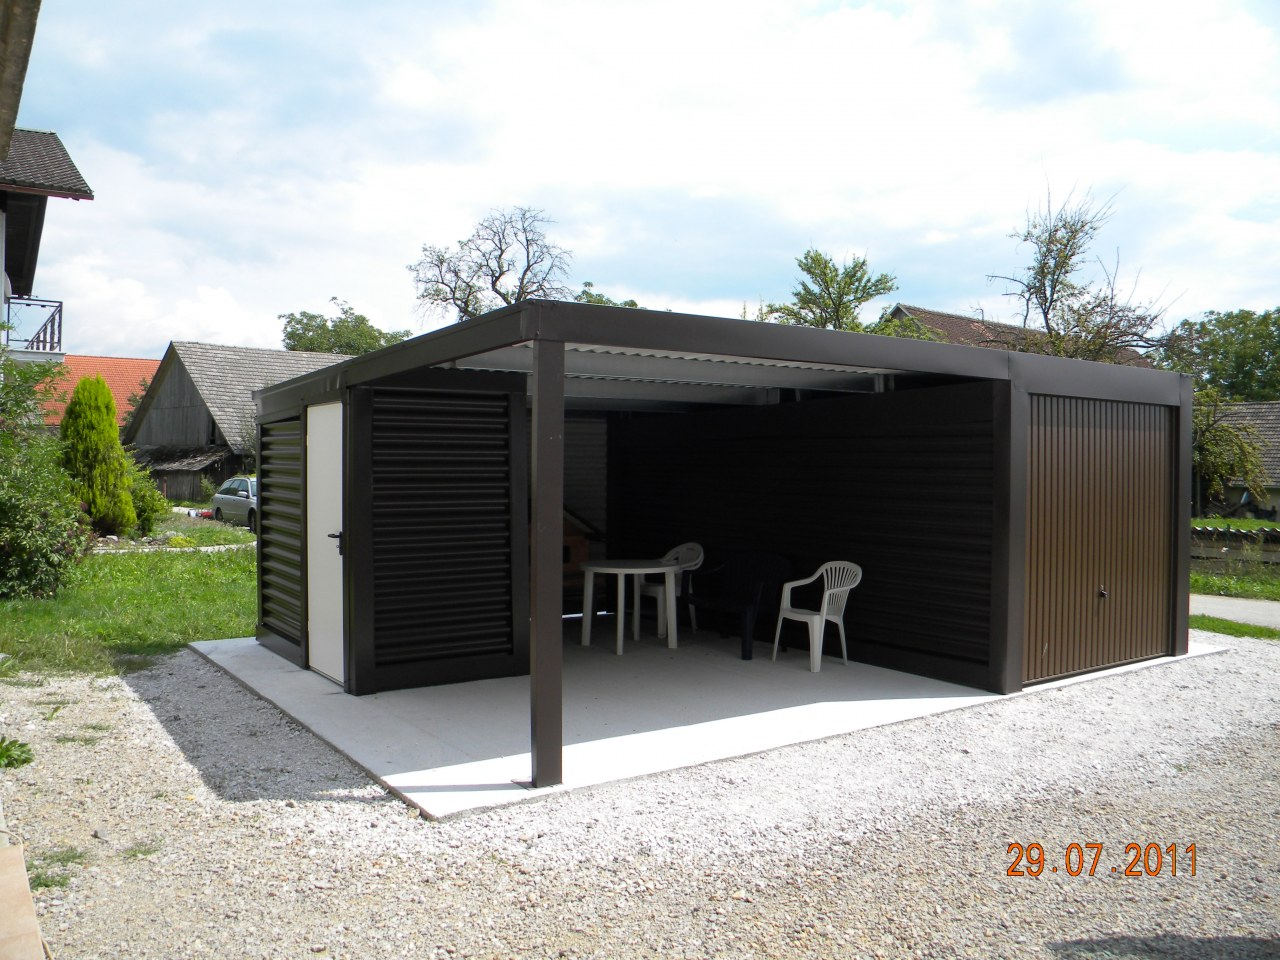 garage mit carport amazing garage mit carport und abstellraum loopele fr carport mit. Black Bedroom Furniture Sets. Home Design Ideas